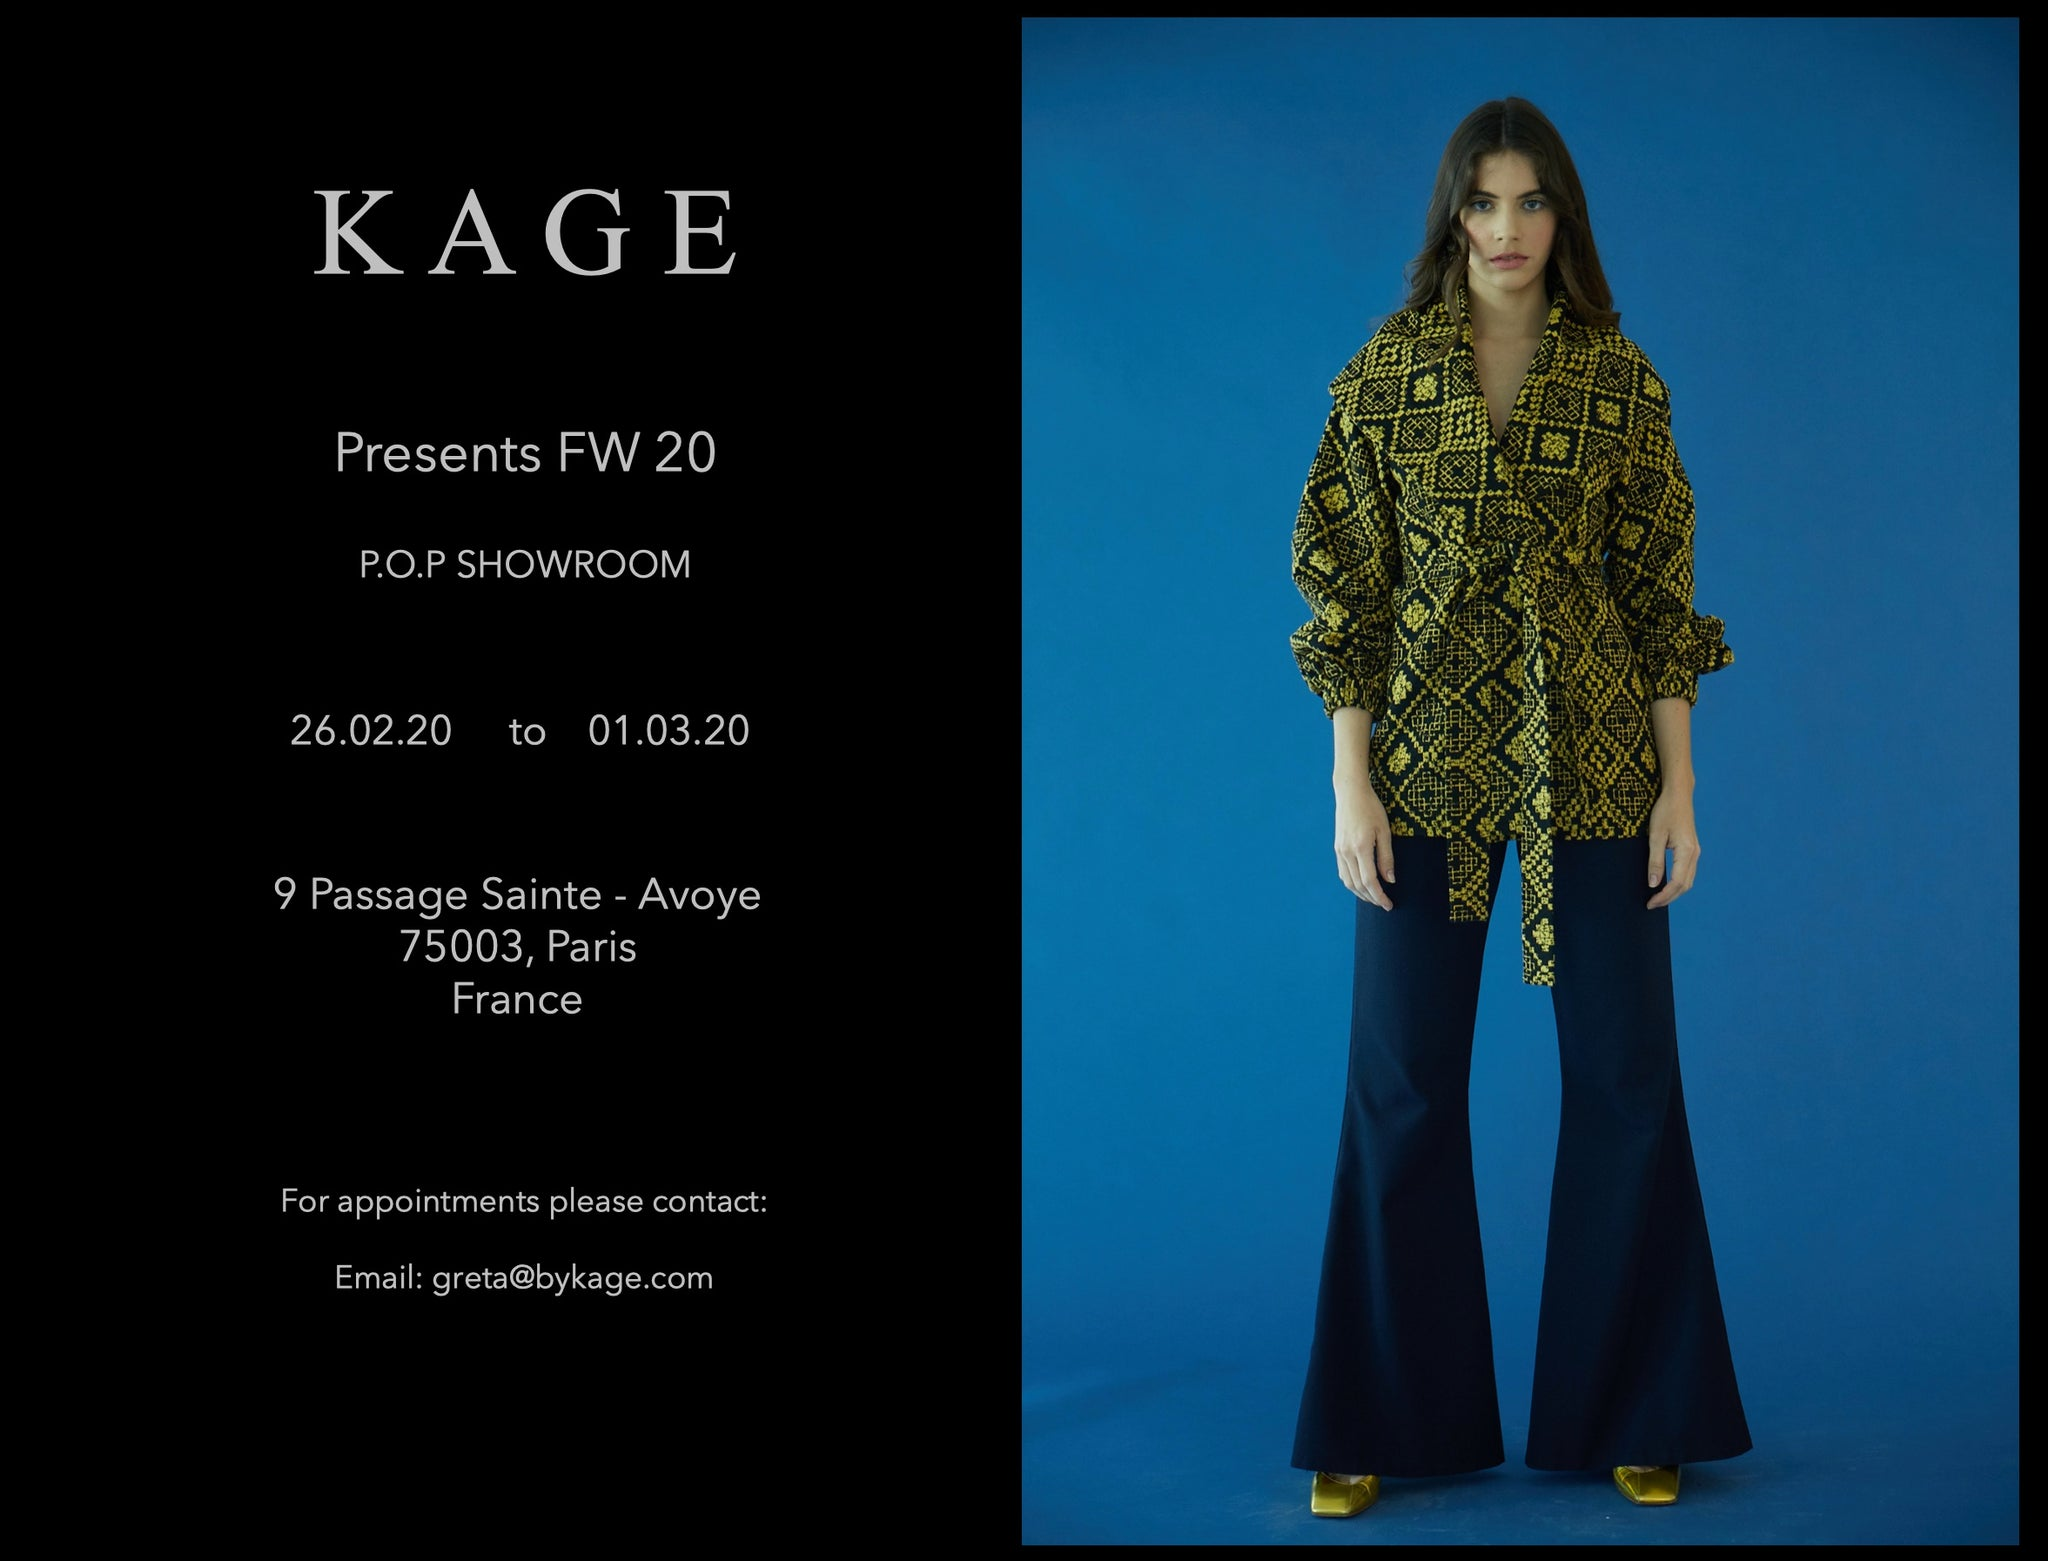 KAGE FW20 Showroom Dates